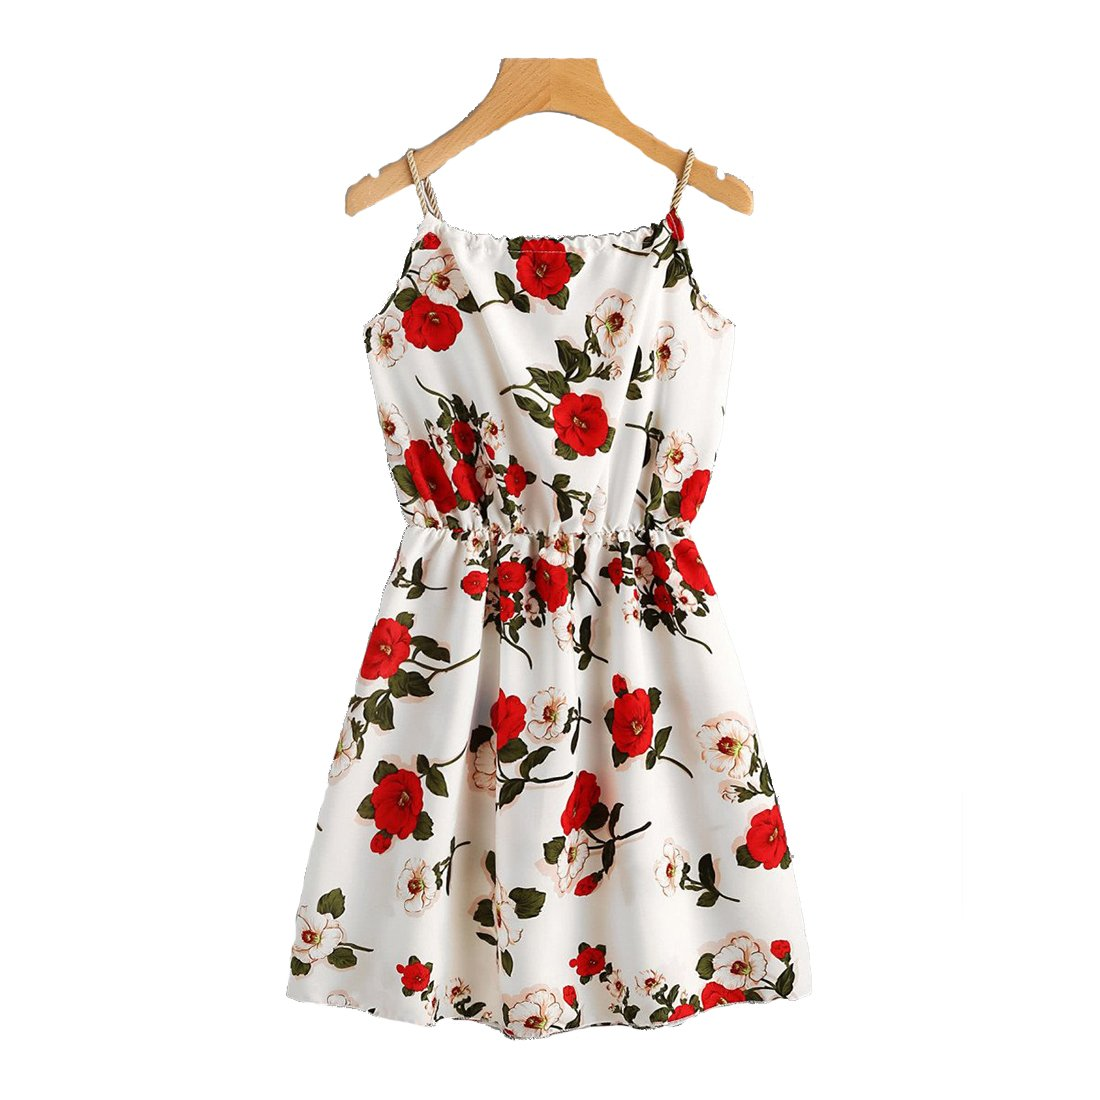 8aae5f84d9eae Rosebella Floral Print Random Self Tie Cami Dress: Amazon.in: Clothing &  Accessories